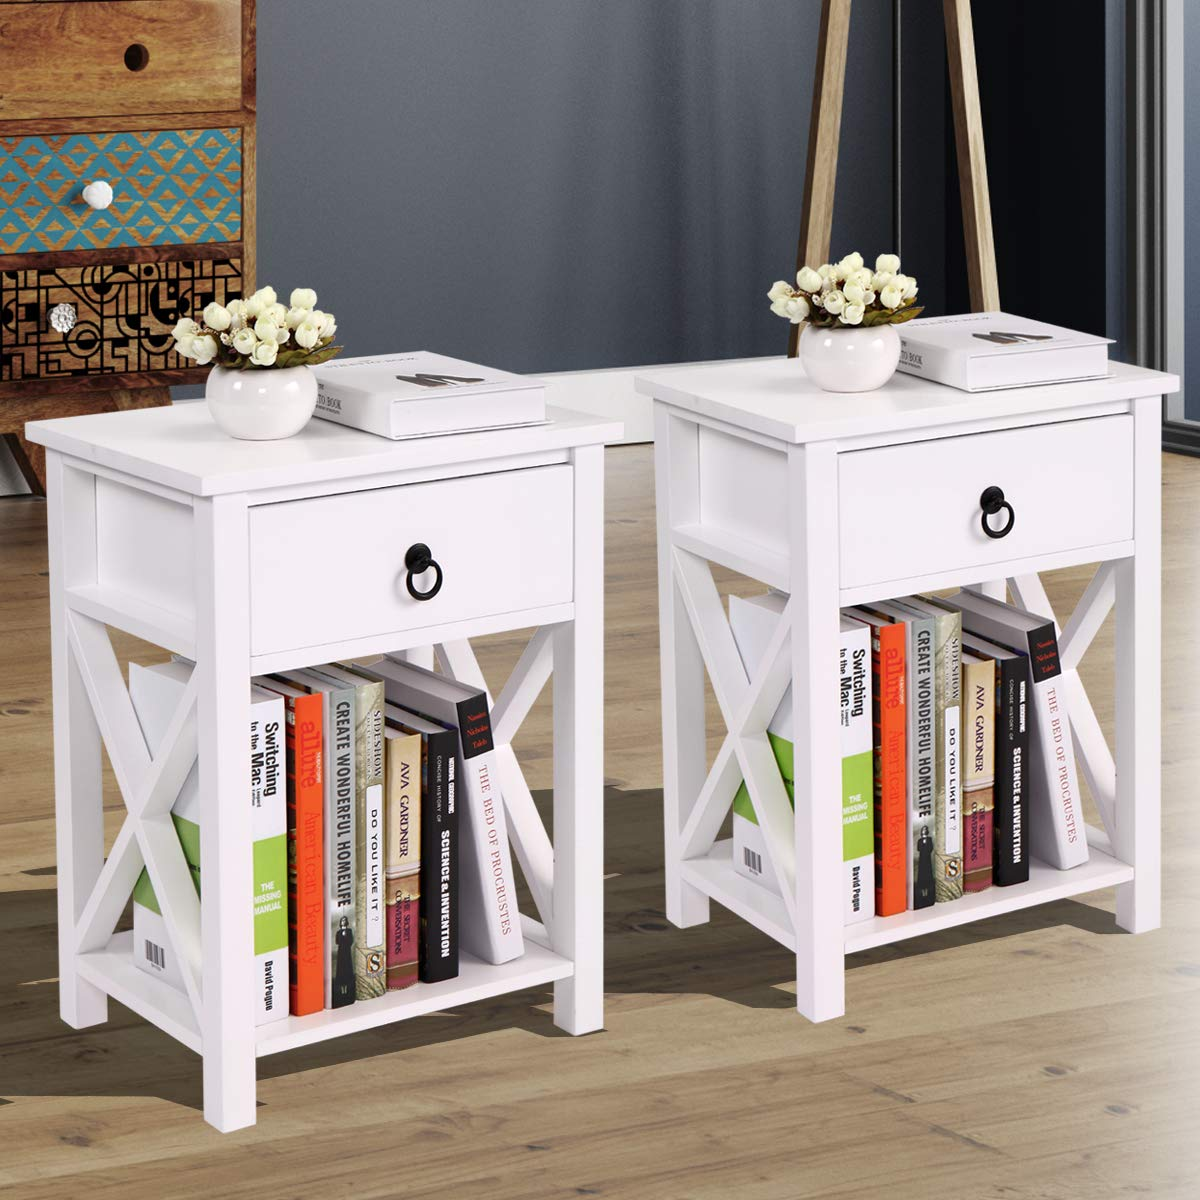 JAXSUNNY Set of 2 End Table Side Table Wooden X- Shaped Nightstand with Drawer and Storage Shelf, White Night Stand by JAXSUNNY